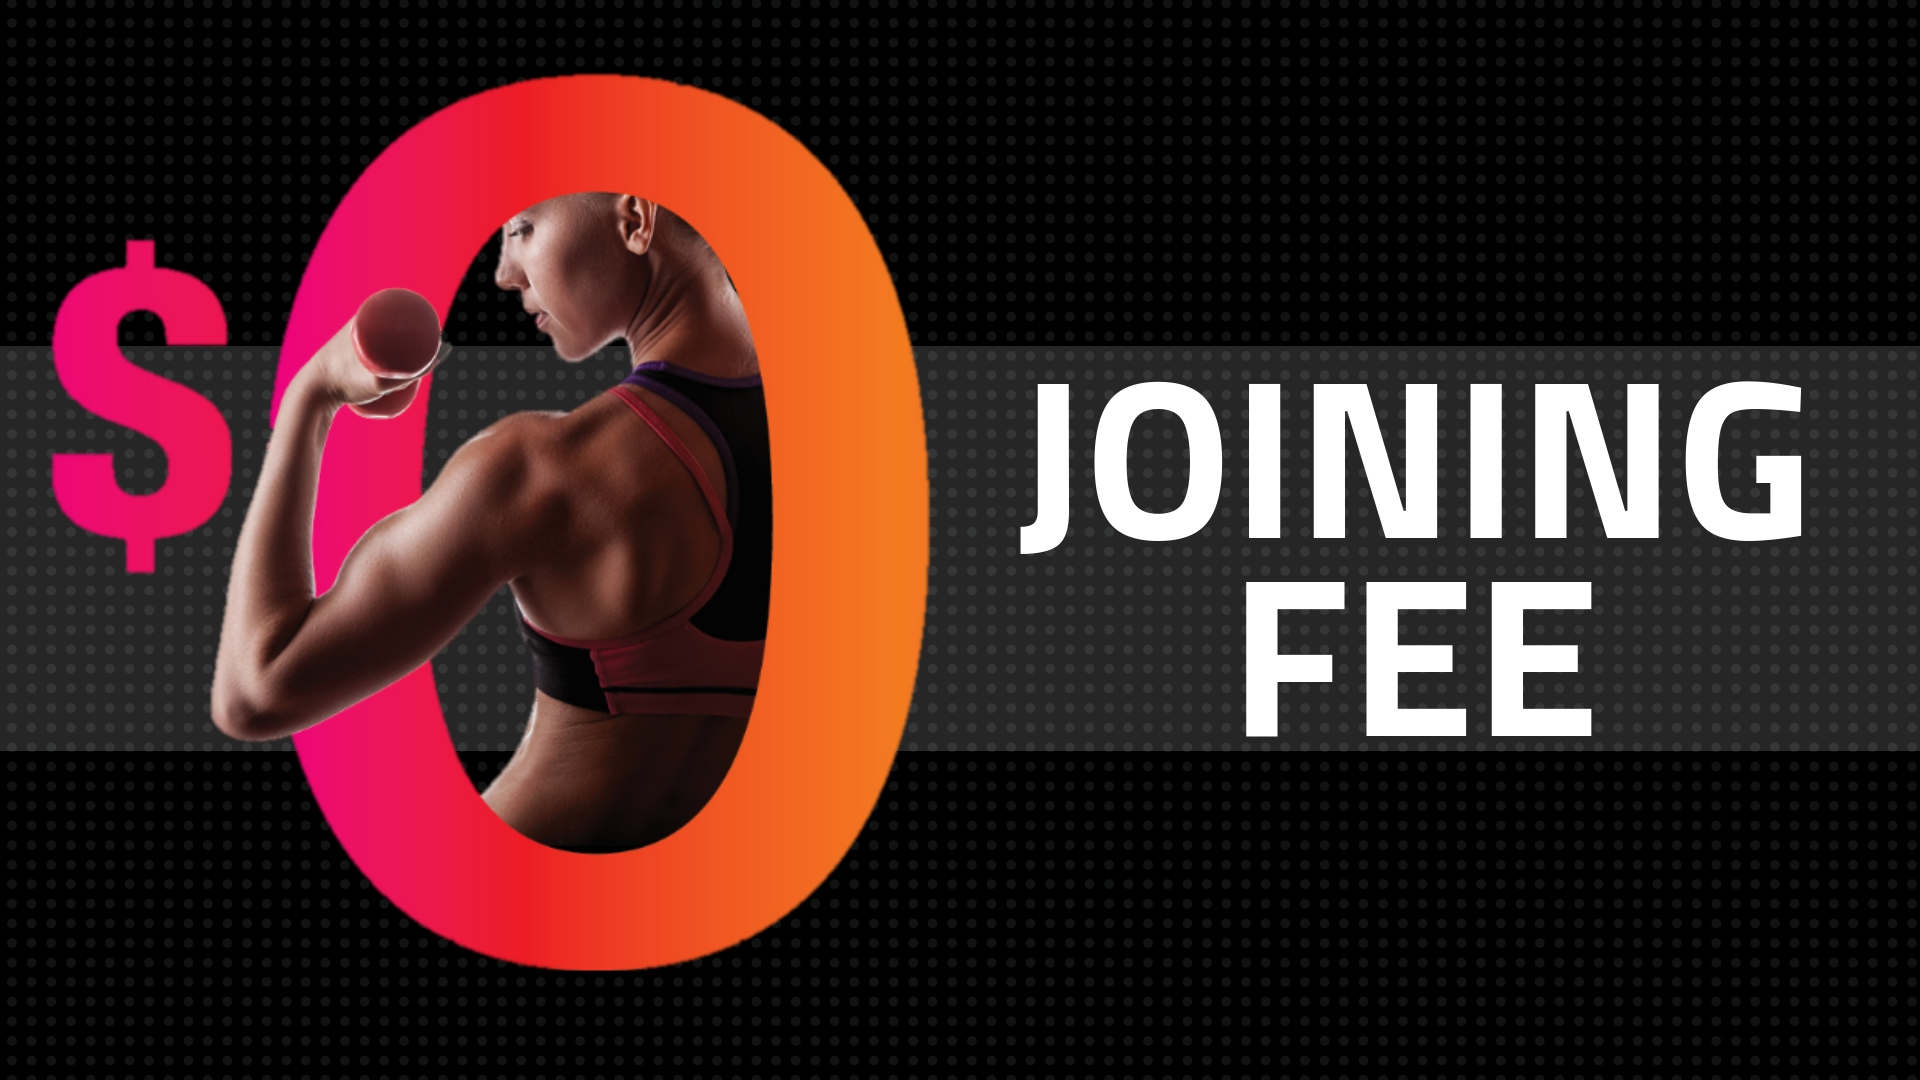 $0 Joining Fee